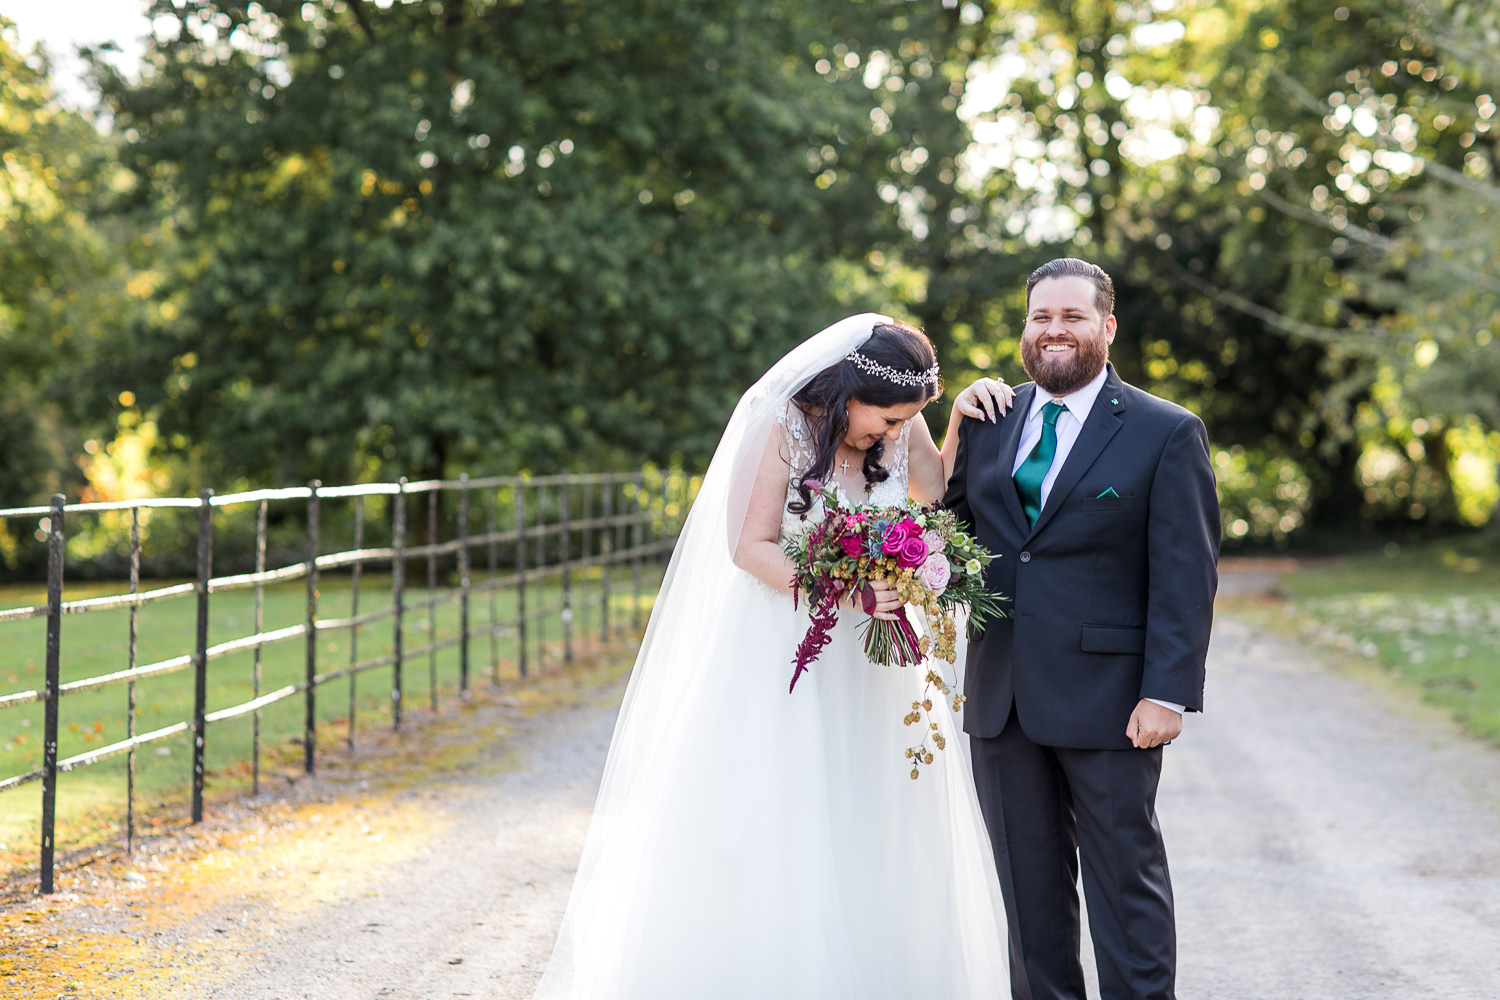 Wedding Photography   Katya Koliban Photography    |  Wedding Venue   Blackwater Castle Cork    |  Wedding Styling     LoveBird Designs    |  Catering   Wildside Catering     |     Cakes by Dawn    |  Spiritualist   Niamh Walsh    |  Lighting   I Do Candle Lighting    |  Hair & Make   Up Upstyle Junkie